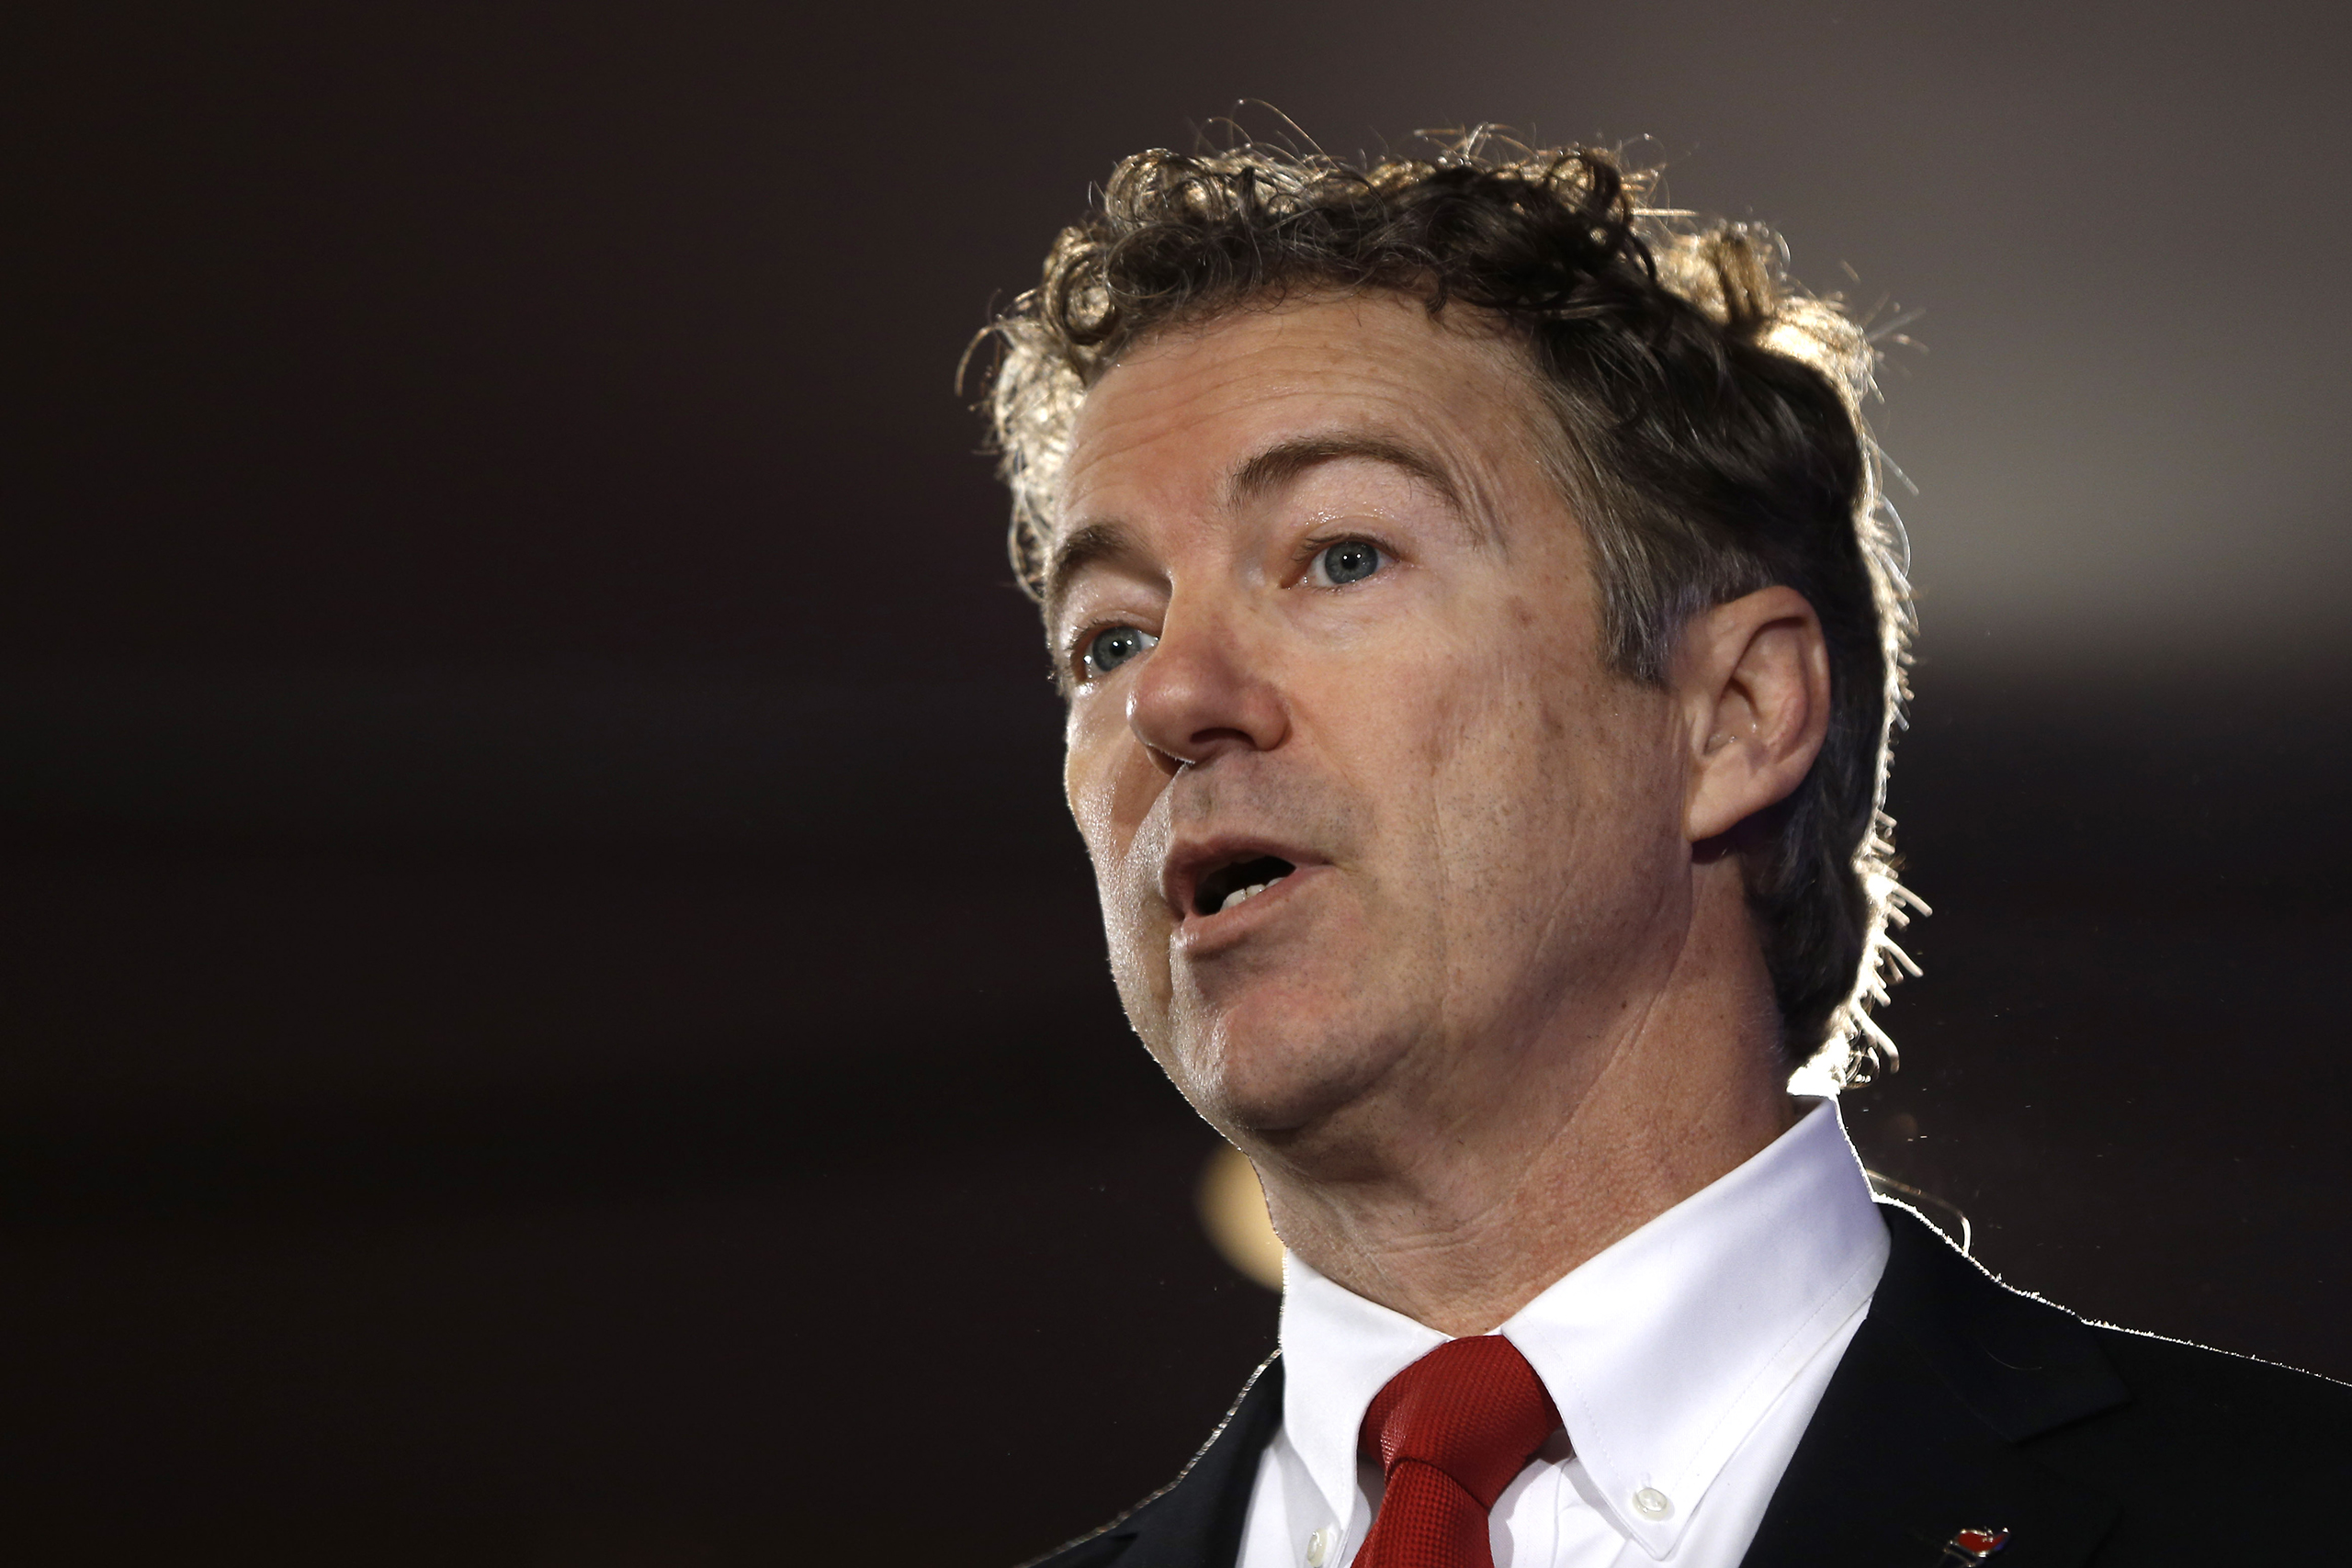 Sen. Rand Paul speaks at the New Hampshire Republican Party summit in Nashua, N.H., Jan. 23, 2016.